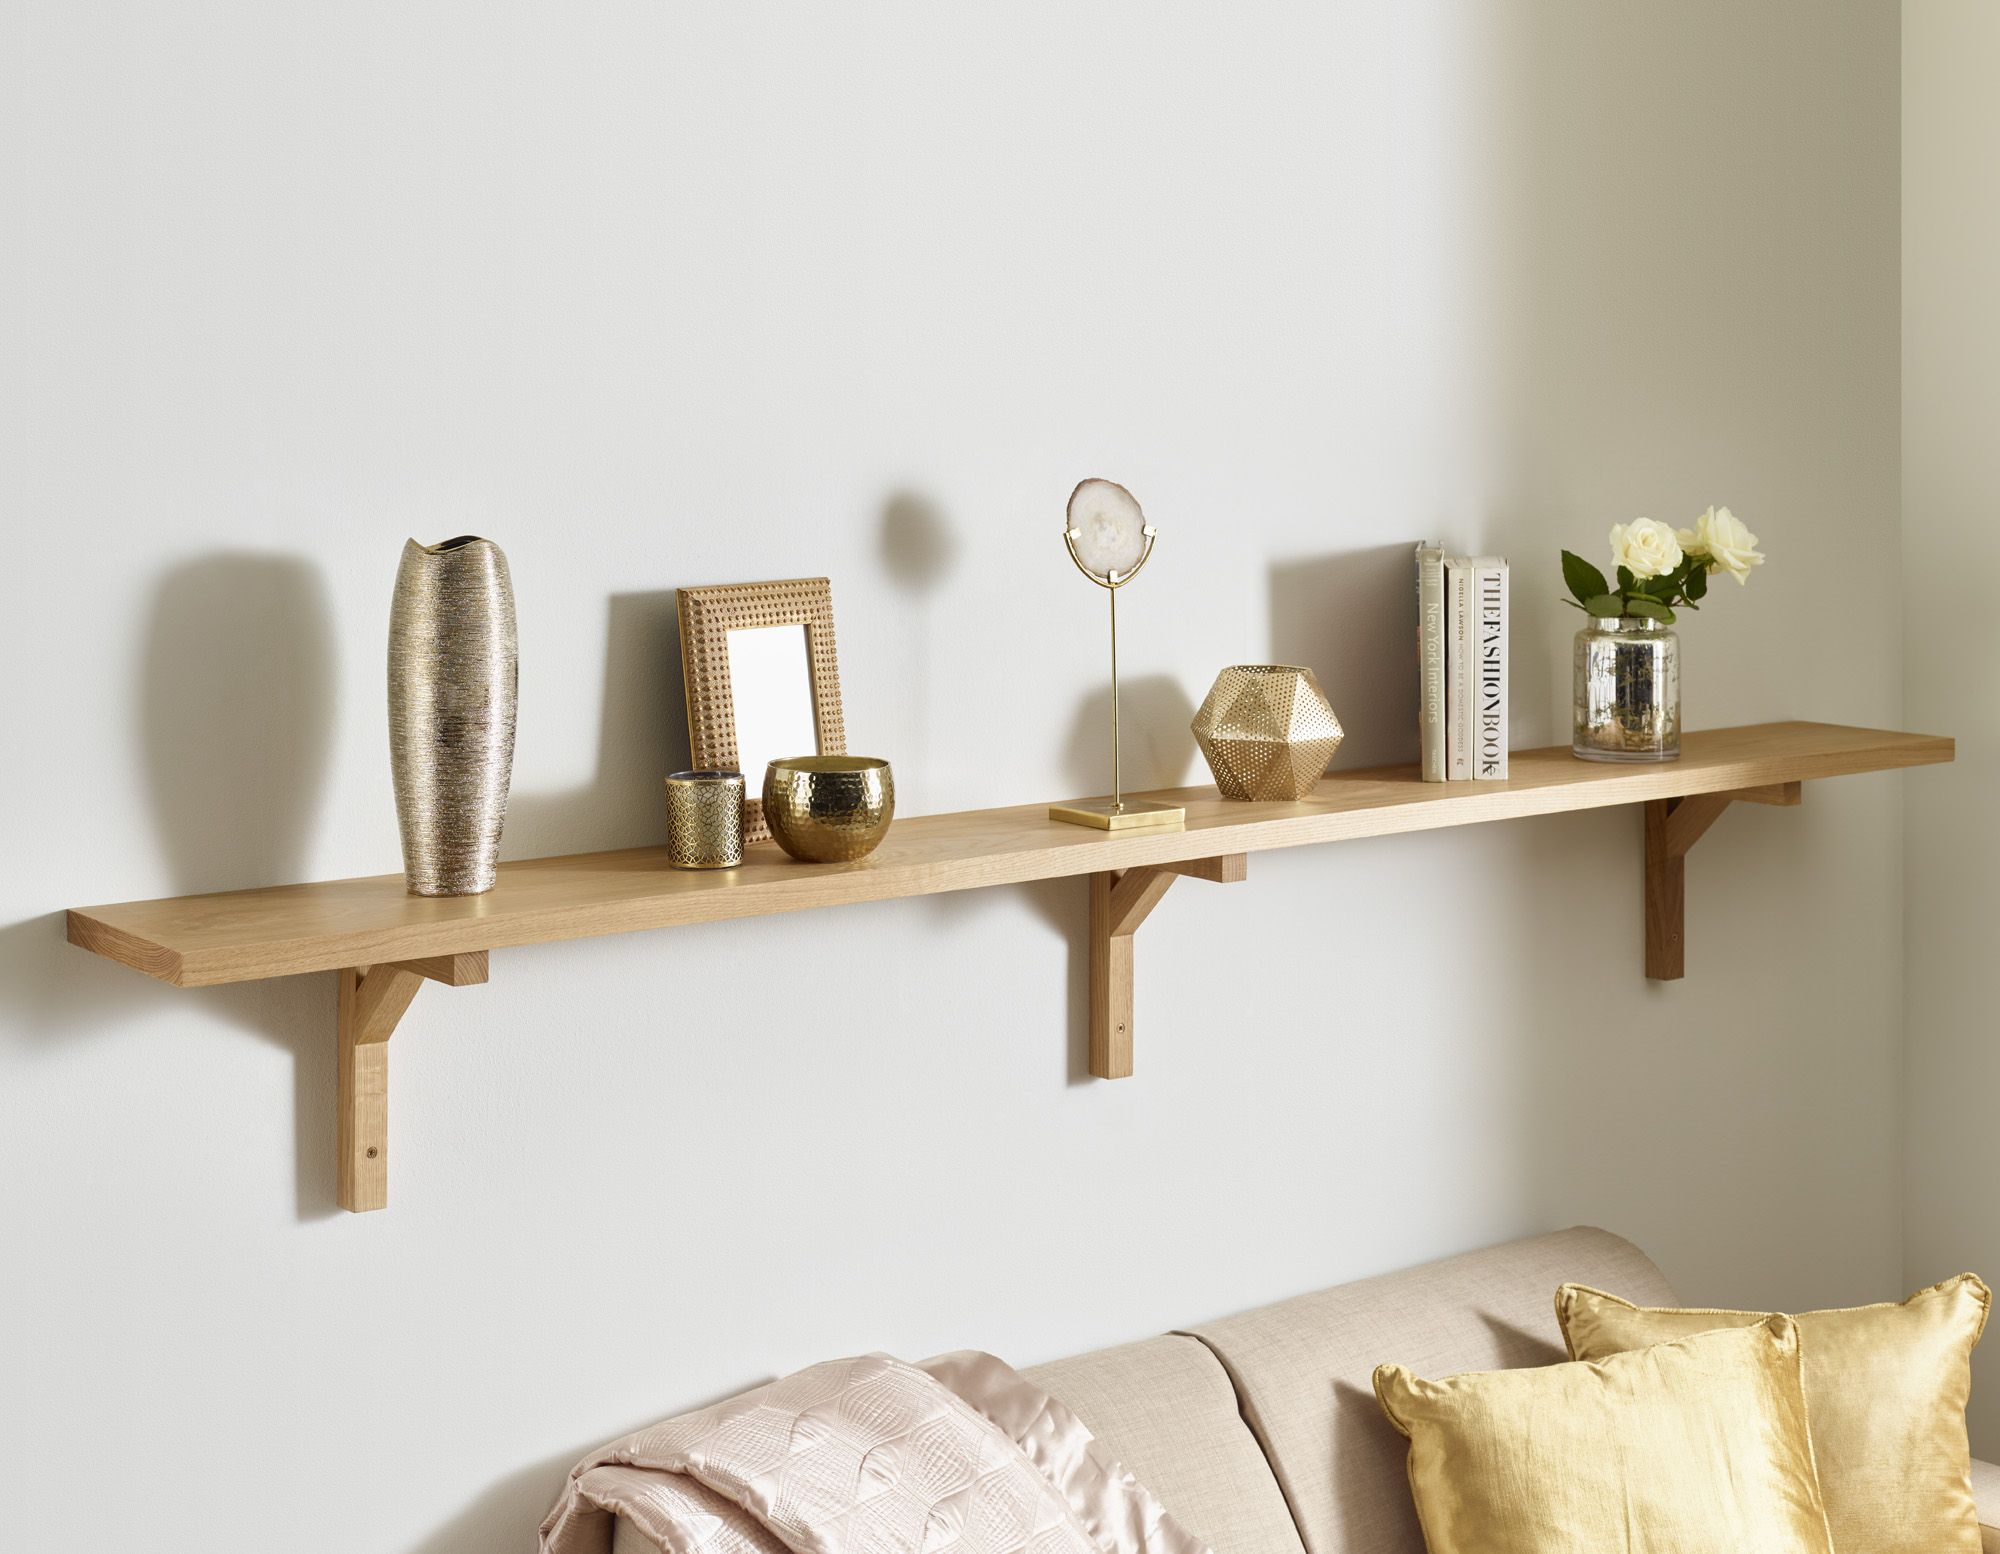 solid oak wall shelf modern brackets floating large wood bathroom shelves above toilet mounted hall stand mini corner easy shelving ideas diy shoe cabinet with doors decorative